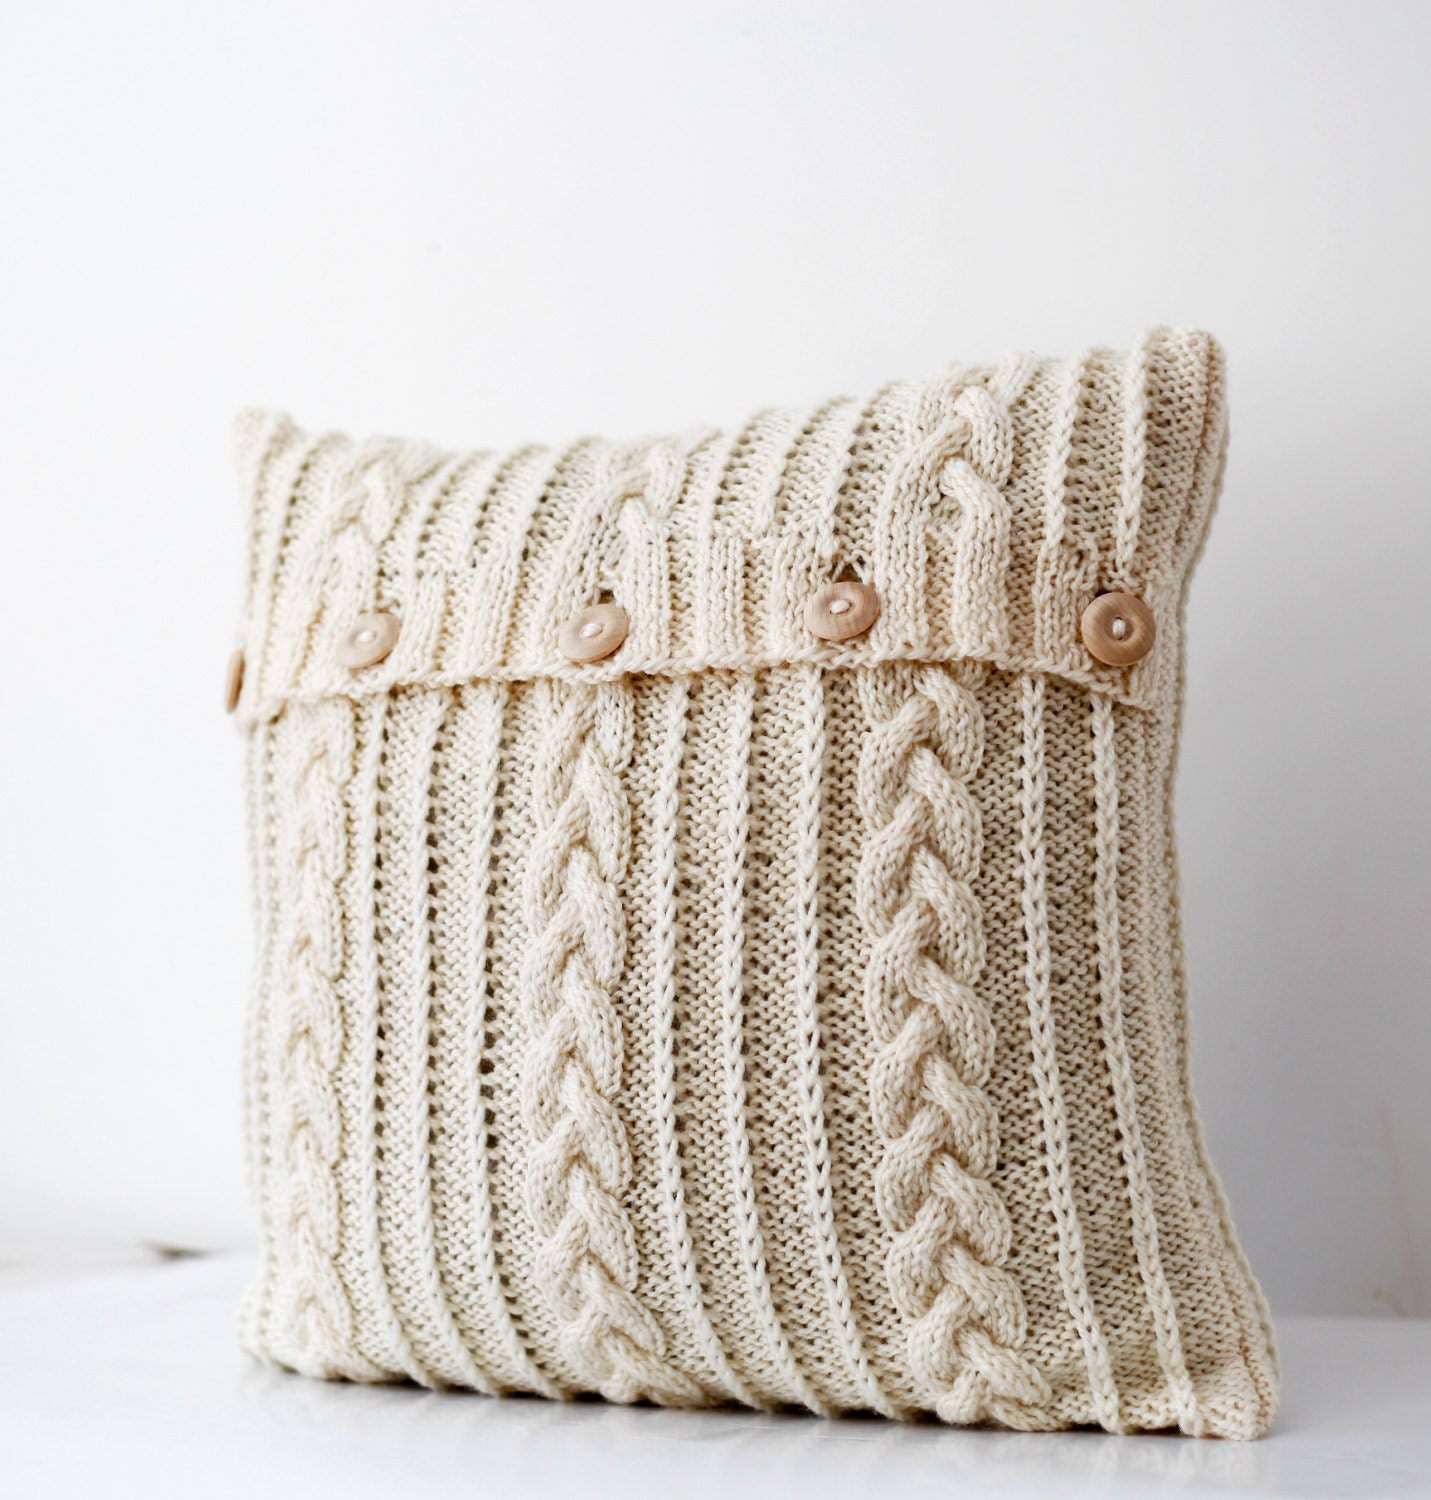 Modern Knitted Pillow : Cable hand knitted pillow wool cover milk white decorative